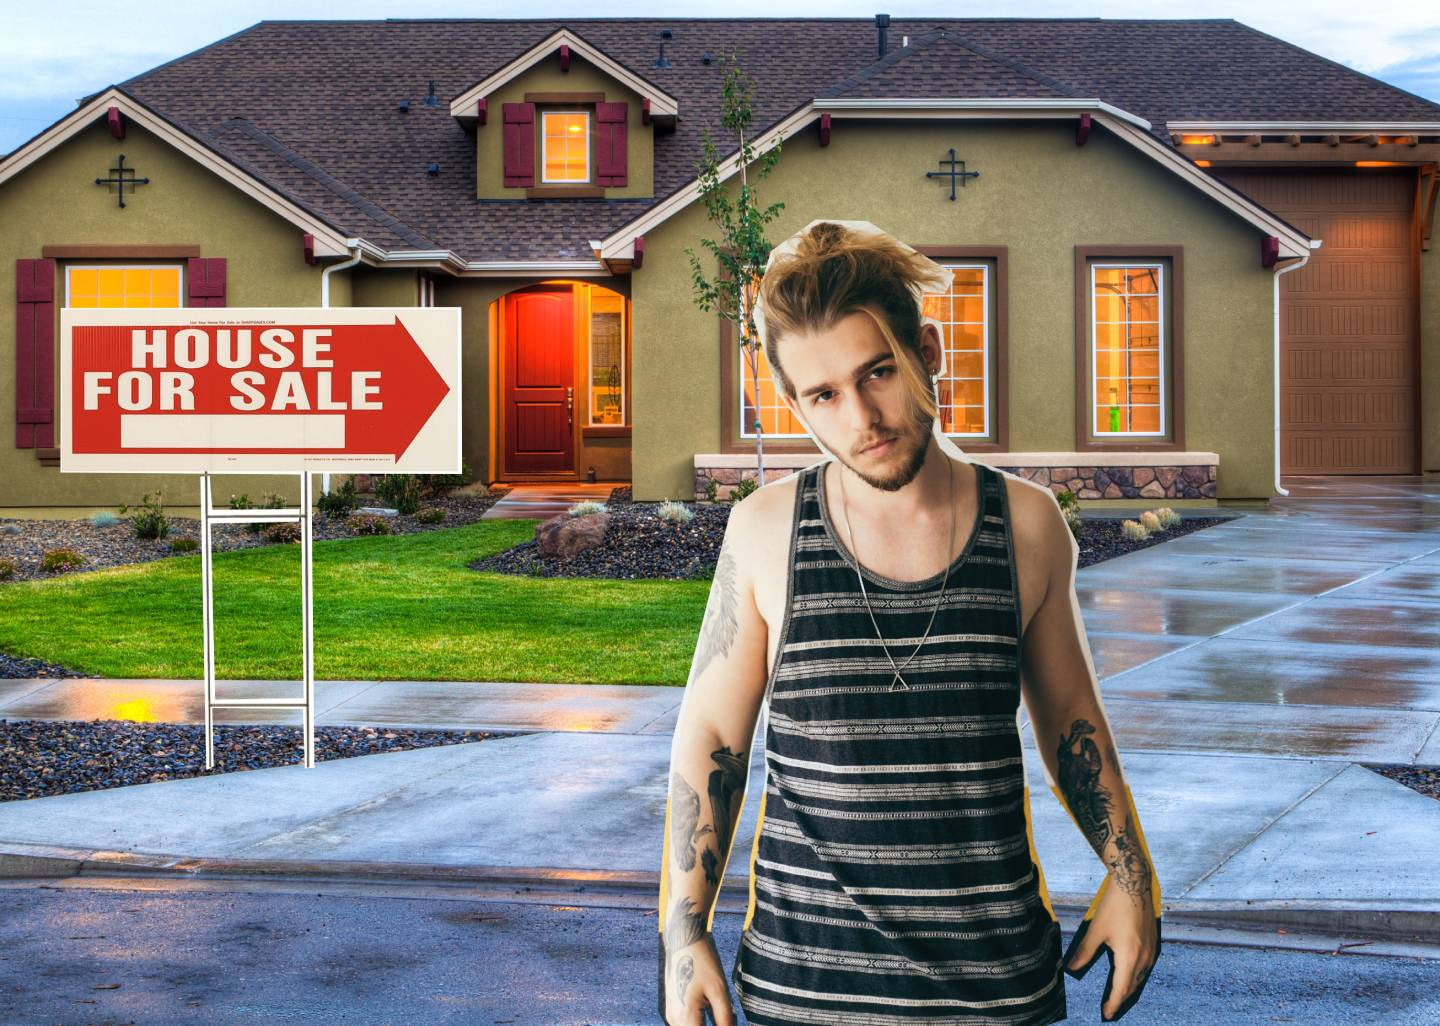 Last Tampa Bay resident without realtors license finally gets one